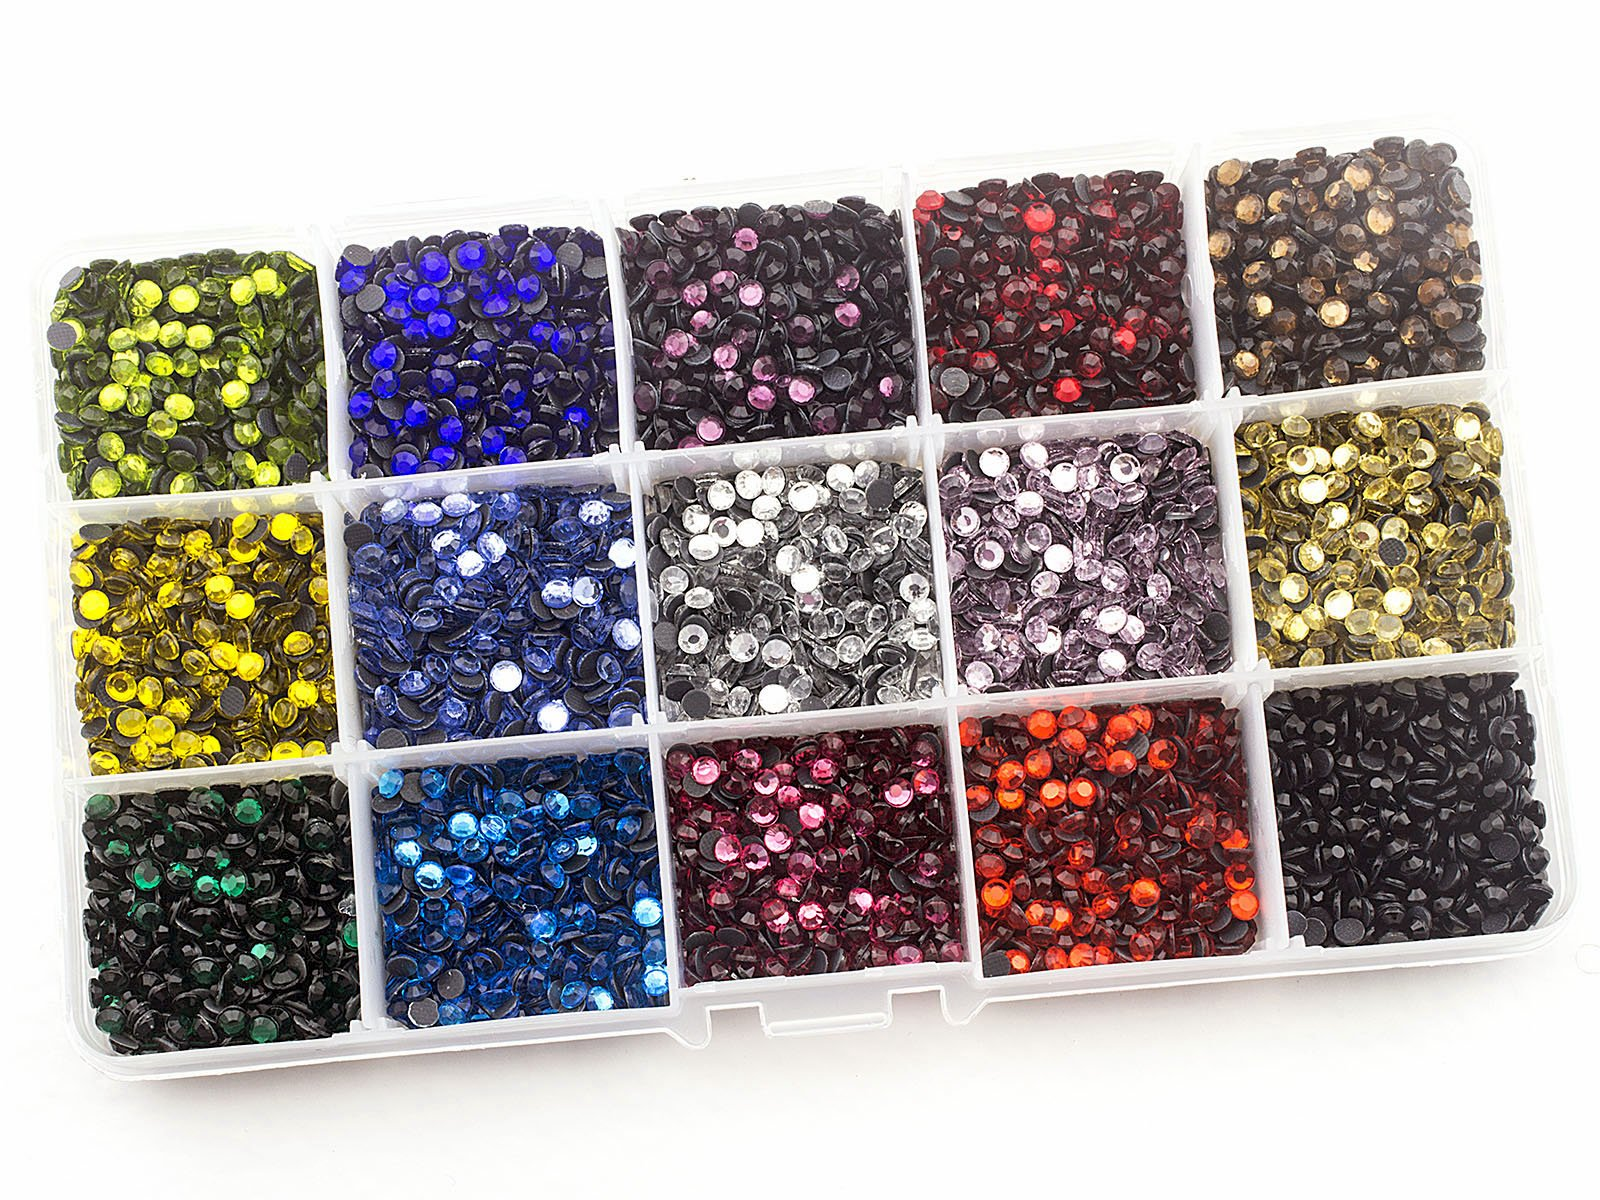 Summer-Ray SS16 4mm Assorted Color Hot Fix Rhinestones in Storage Box by Summer-Ray.com